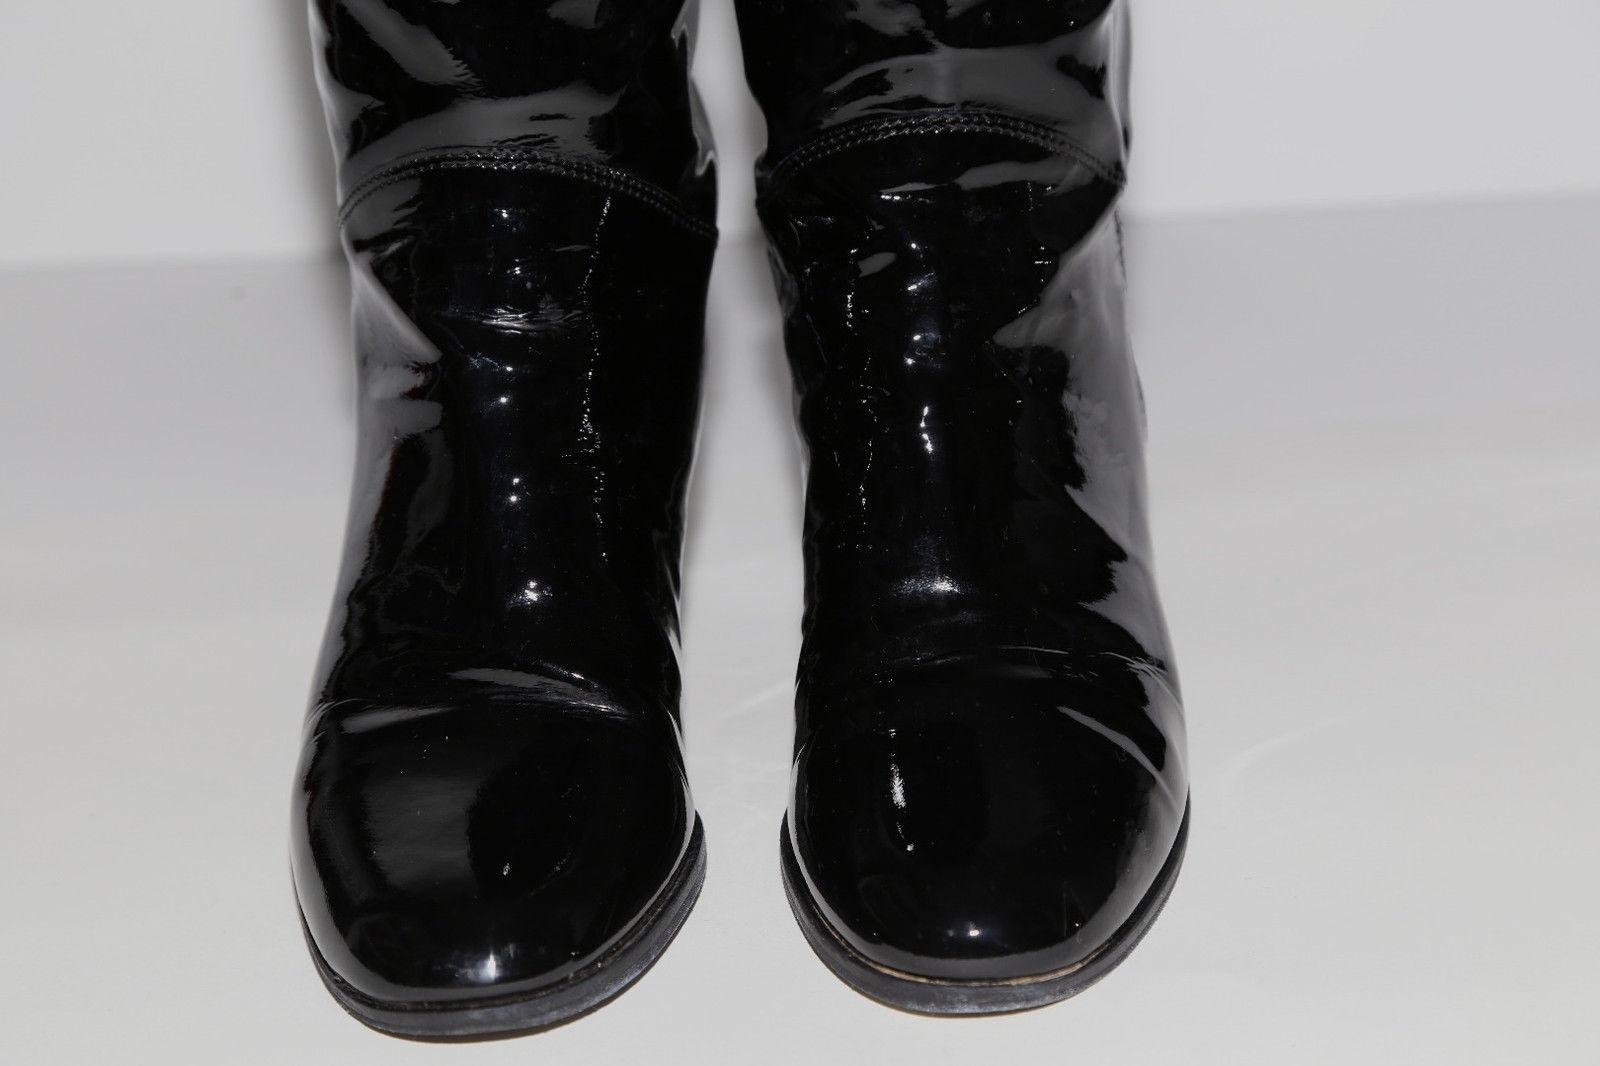 chanel knee high boots. chanel black boots knee high